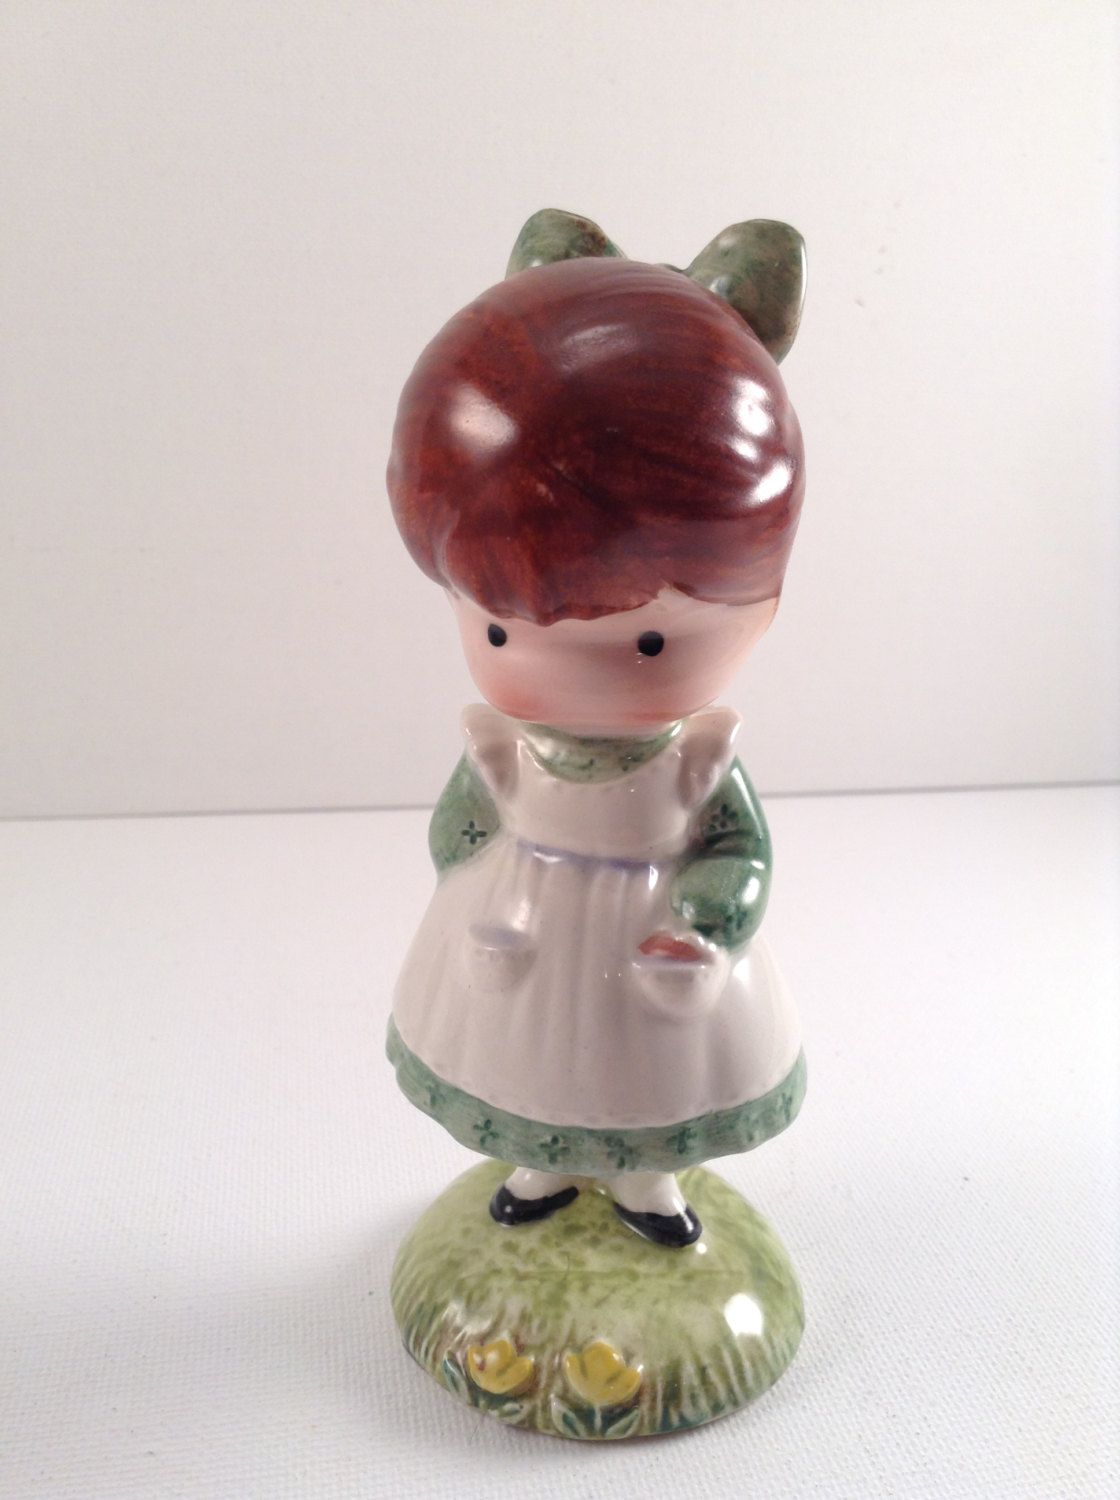 Vintage Joan Walsh Anglund Girl with Doll Figurine - Made in England by CrowsCollection on Etsy